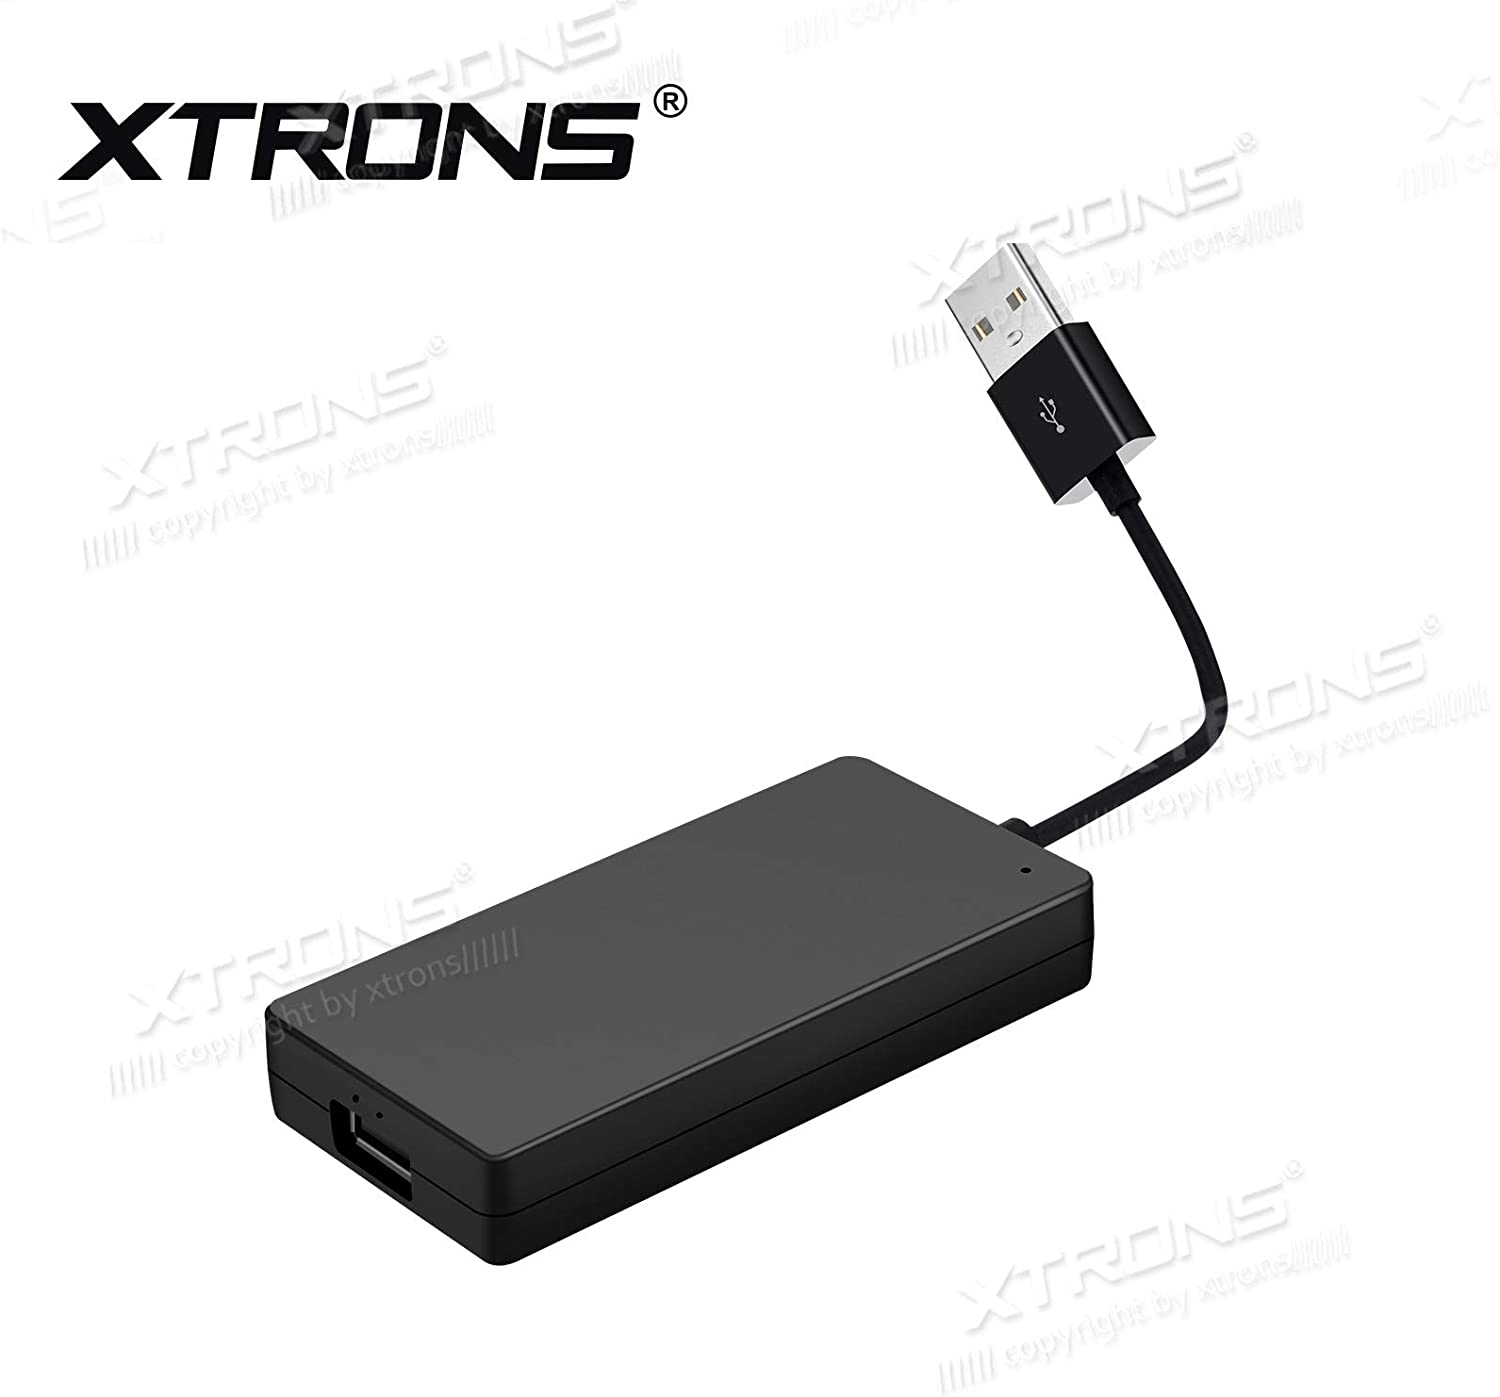 XTRONS Wireless Car Auto Play Mini Dongle USB Android Auto Receiver Adapter for iPhone & Android Smartphone Work with Android Car Stereo GPS Navigation DVD Radio Player